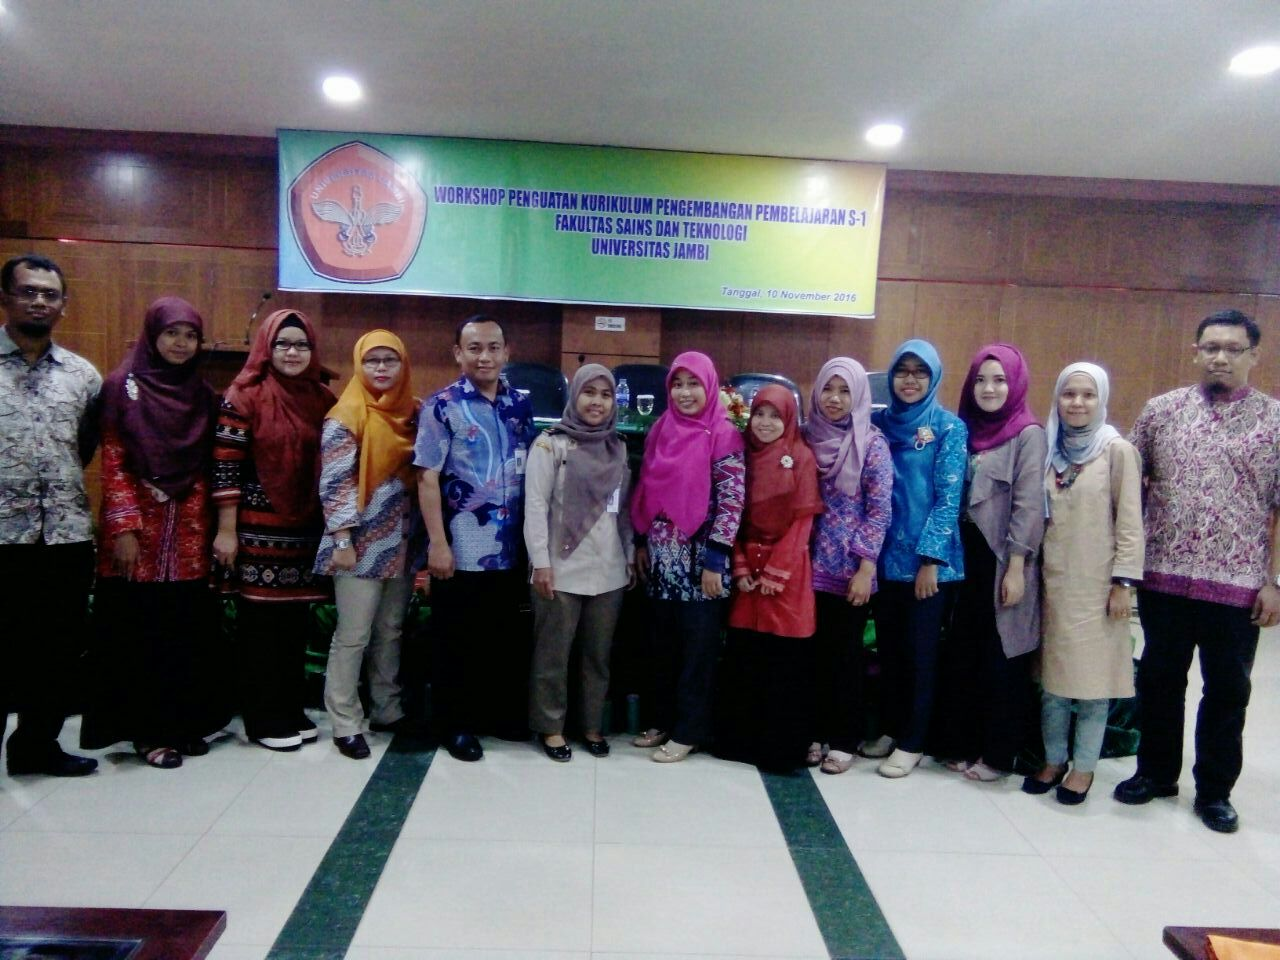 Dokumentasi Workshop Penguatan Kurikulum